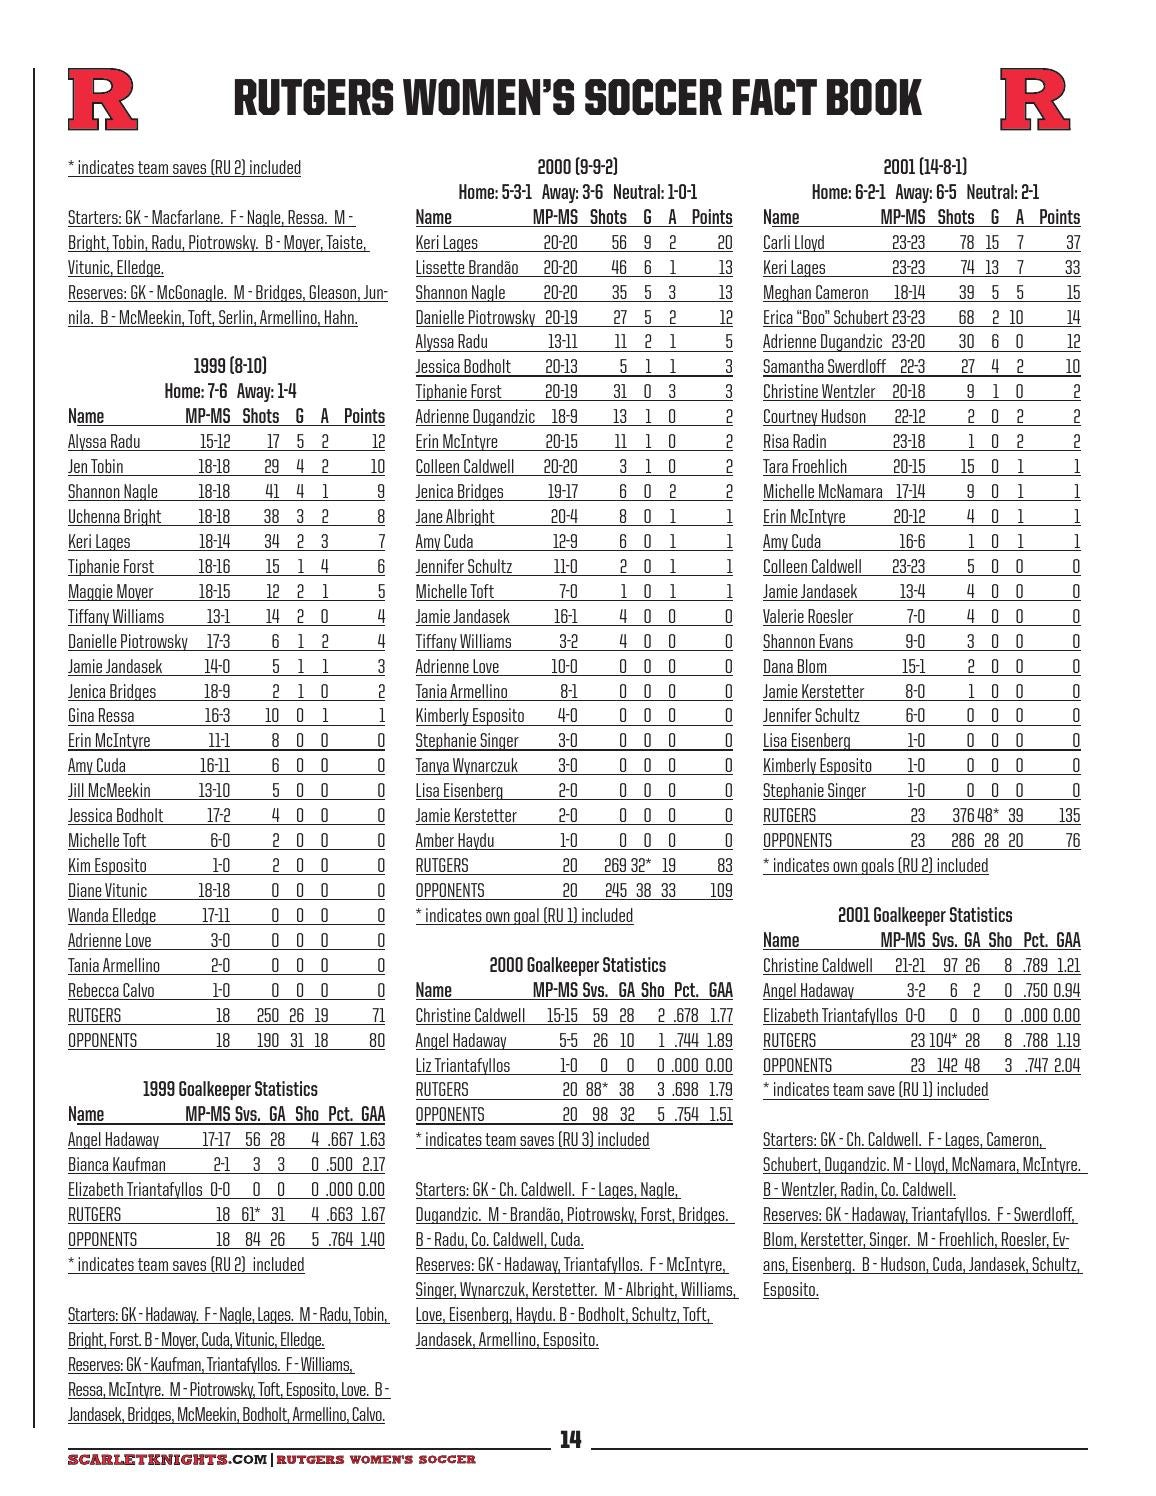 2014 Rutgers Women's Soccer Record Book by Rutgers Athletics